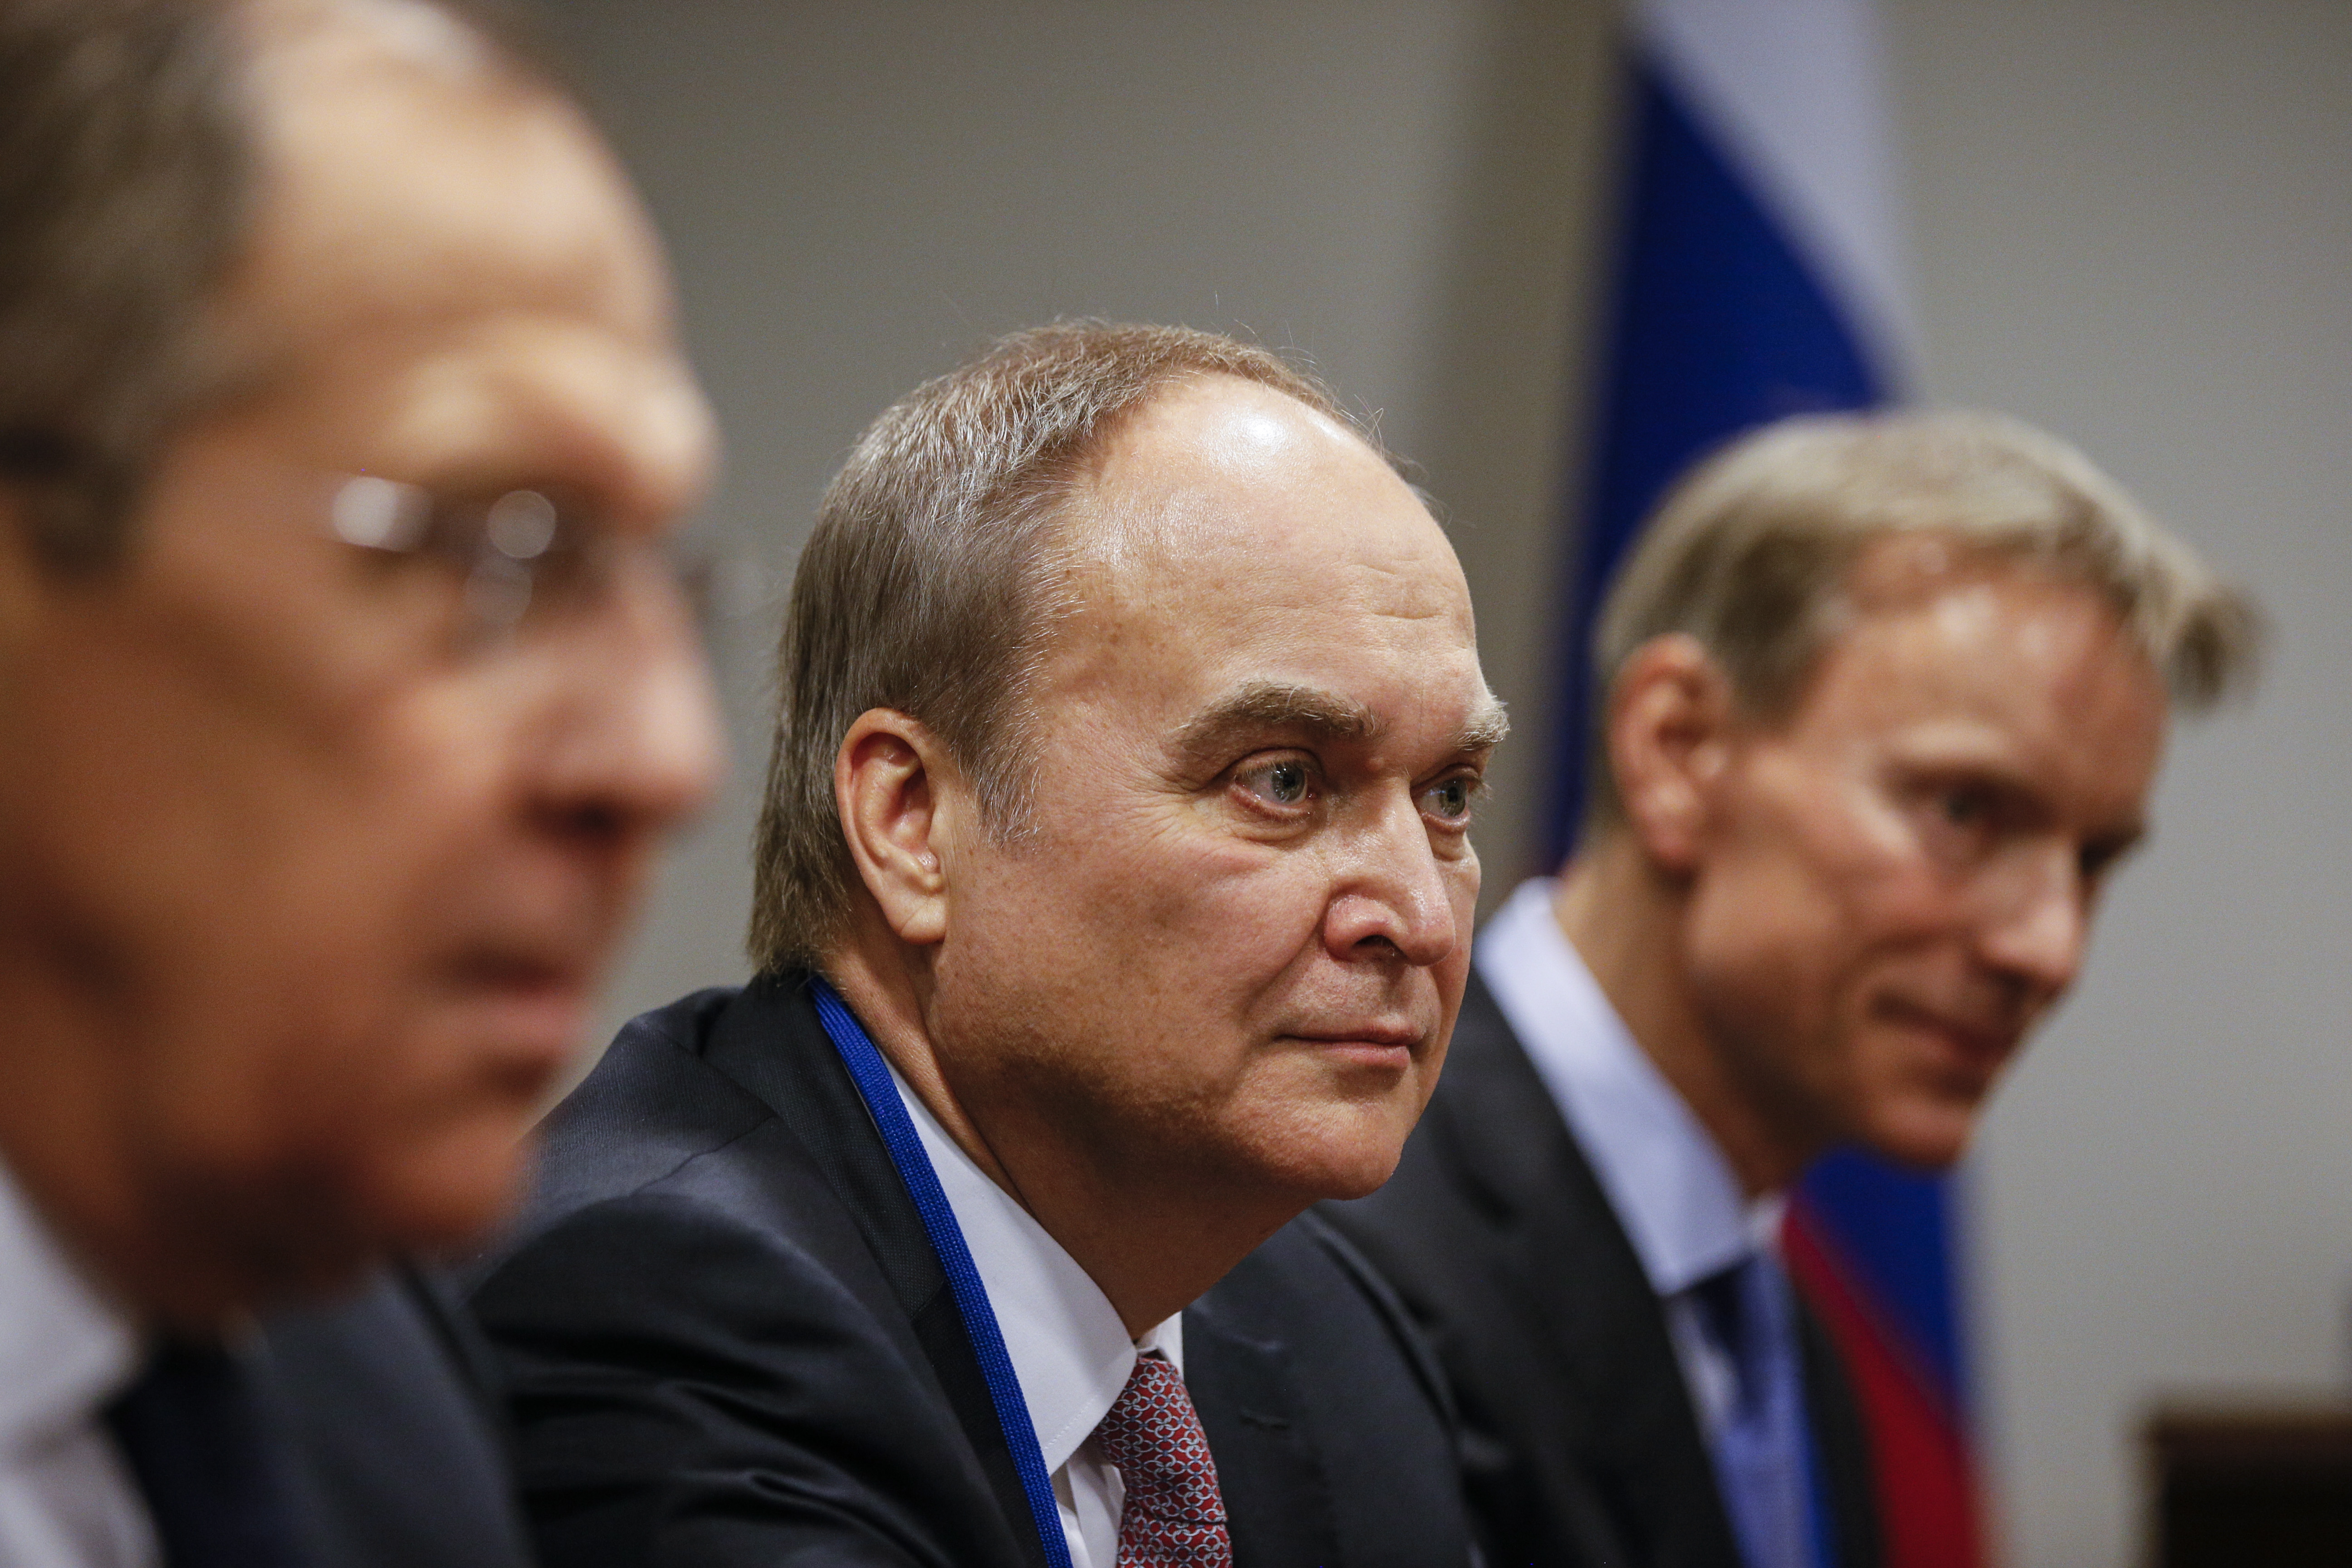 Russia's Minister of Foreign Affairs Sergei Lavrov, Russia's Ambassador to the USA Anatoly Antonov seen during a meeting with Uzbekistan's Foreign Minister Abdulaziz Kamilov at the UN Headquarters.